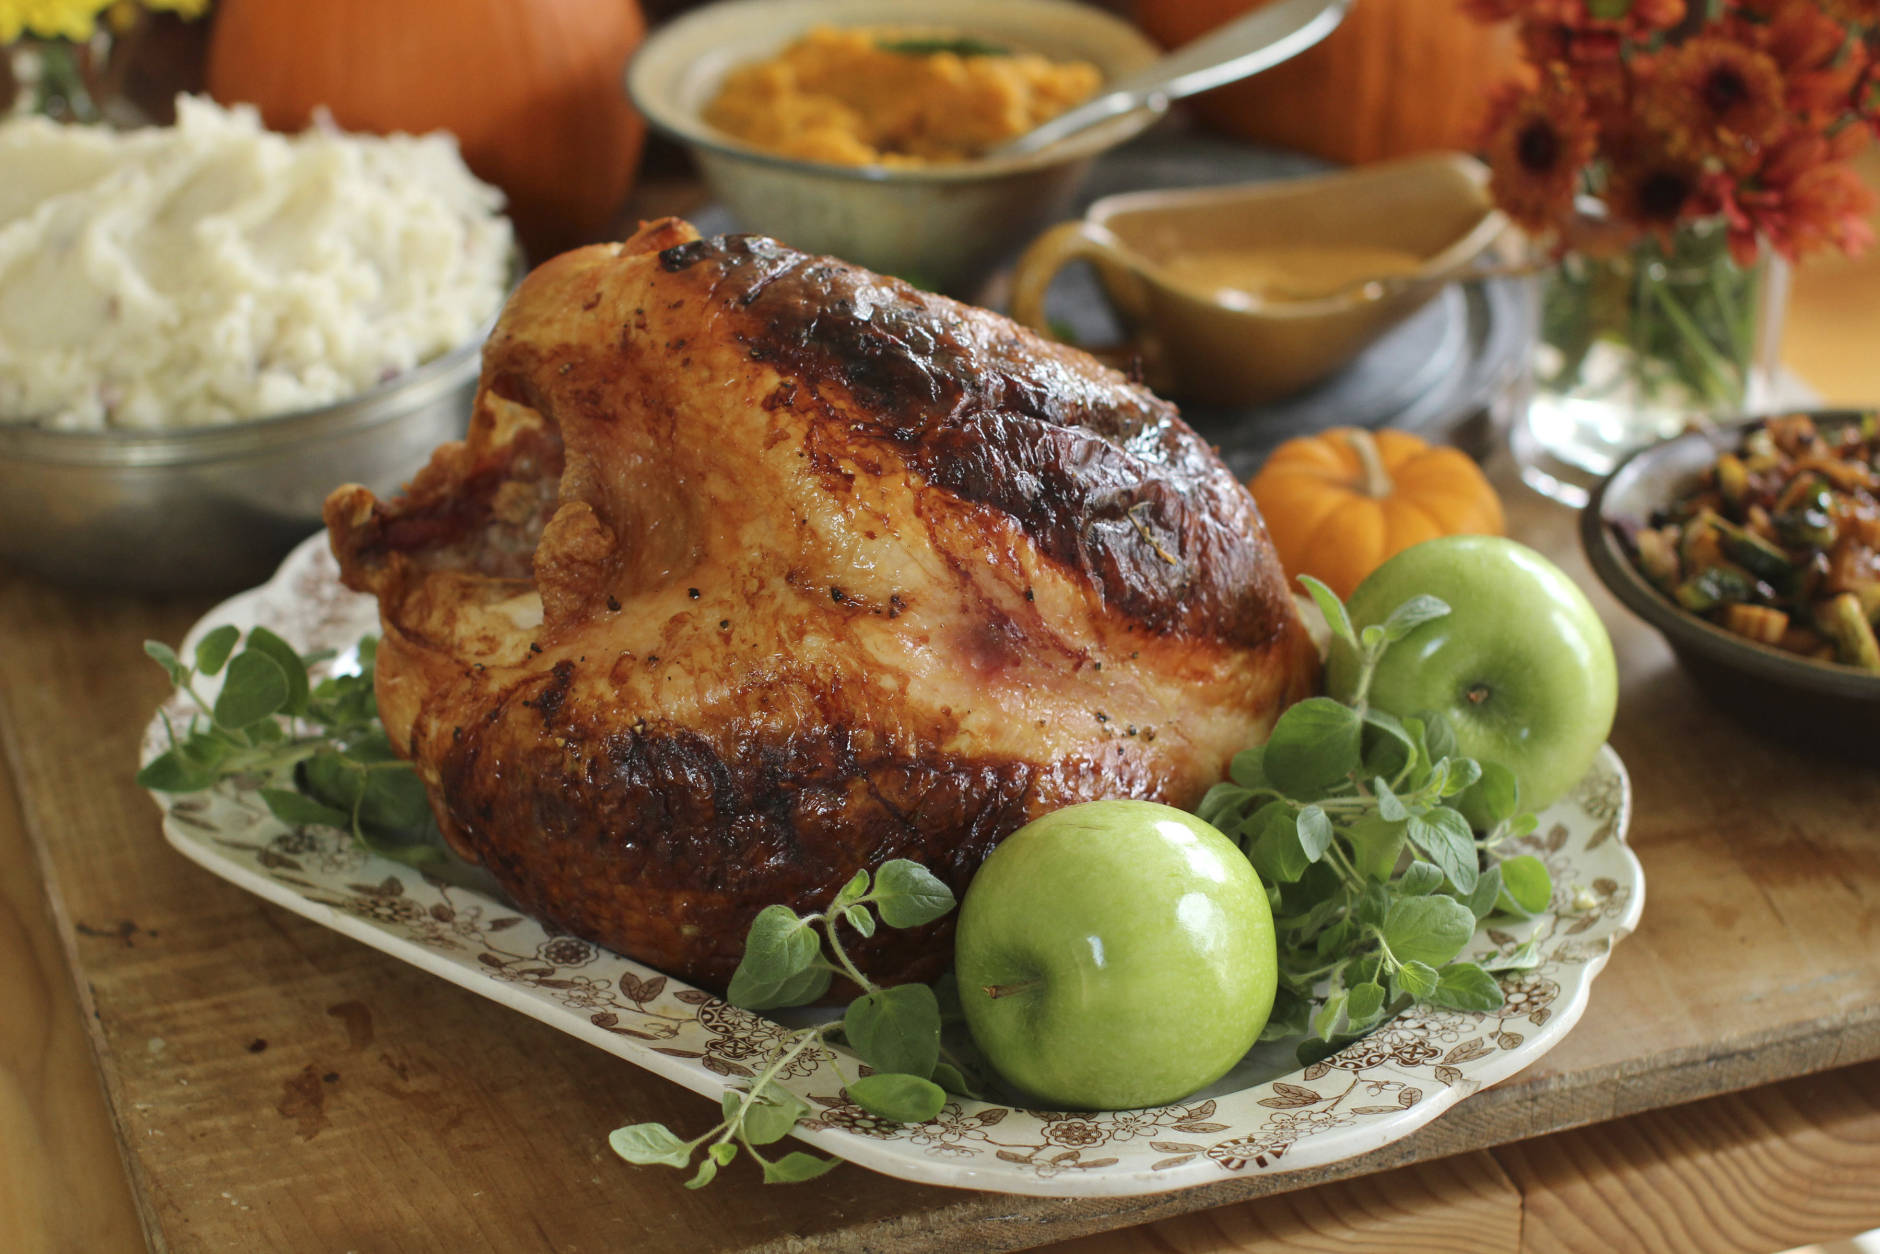 FILE - This Sept. 28, 2015 file photo shows Italian-style roast turkey breast in Concord, N.H. If you're not feeding a crowd for the holidays, then roasting a turkey breast could be the way to go. This dish is from a recipe by Sara Moulton. (AP Photo/Matthew Mead, File)